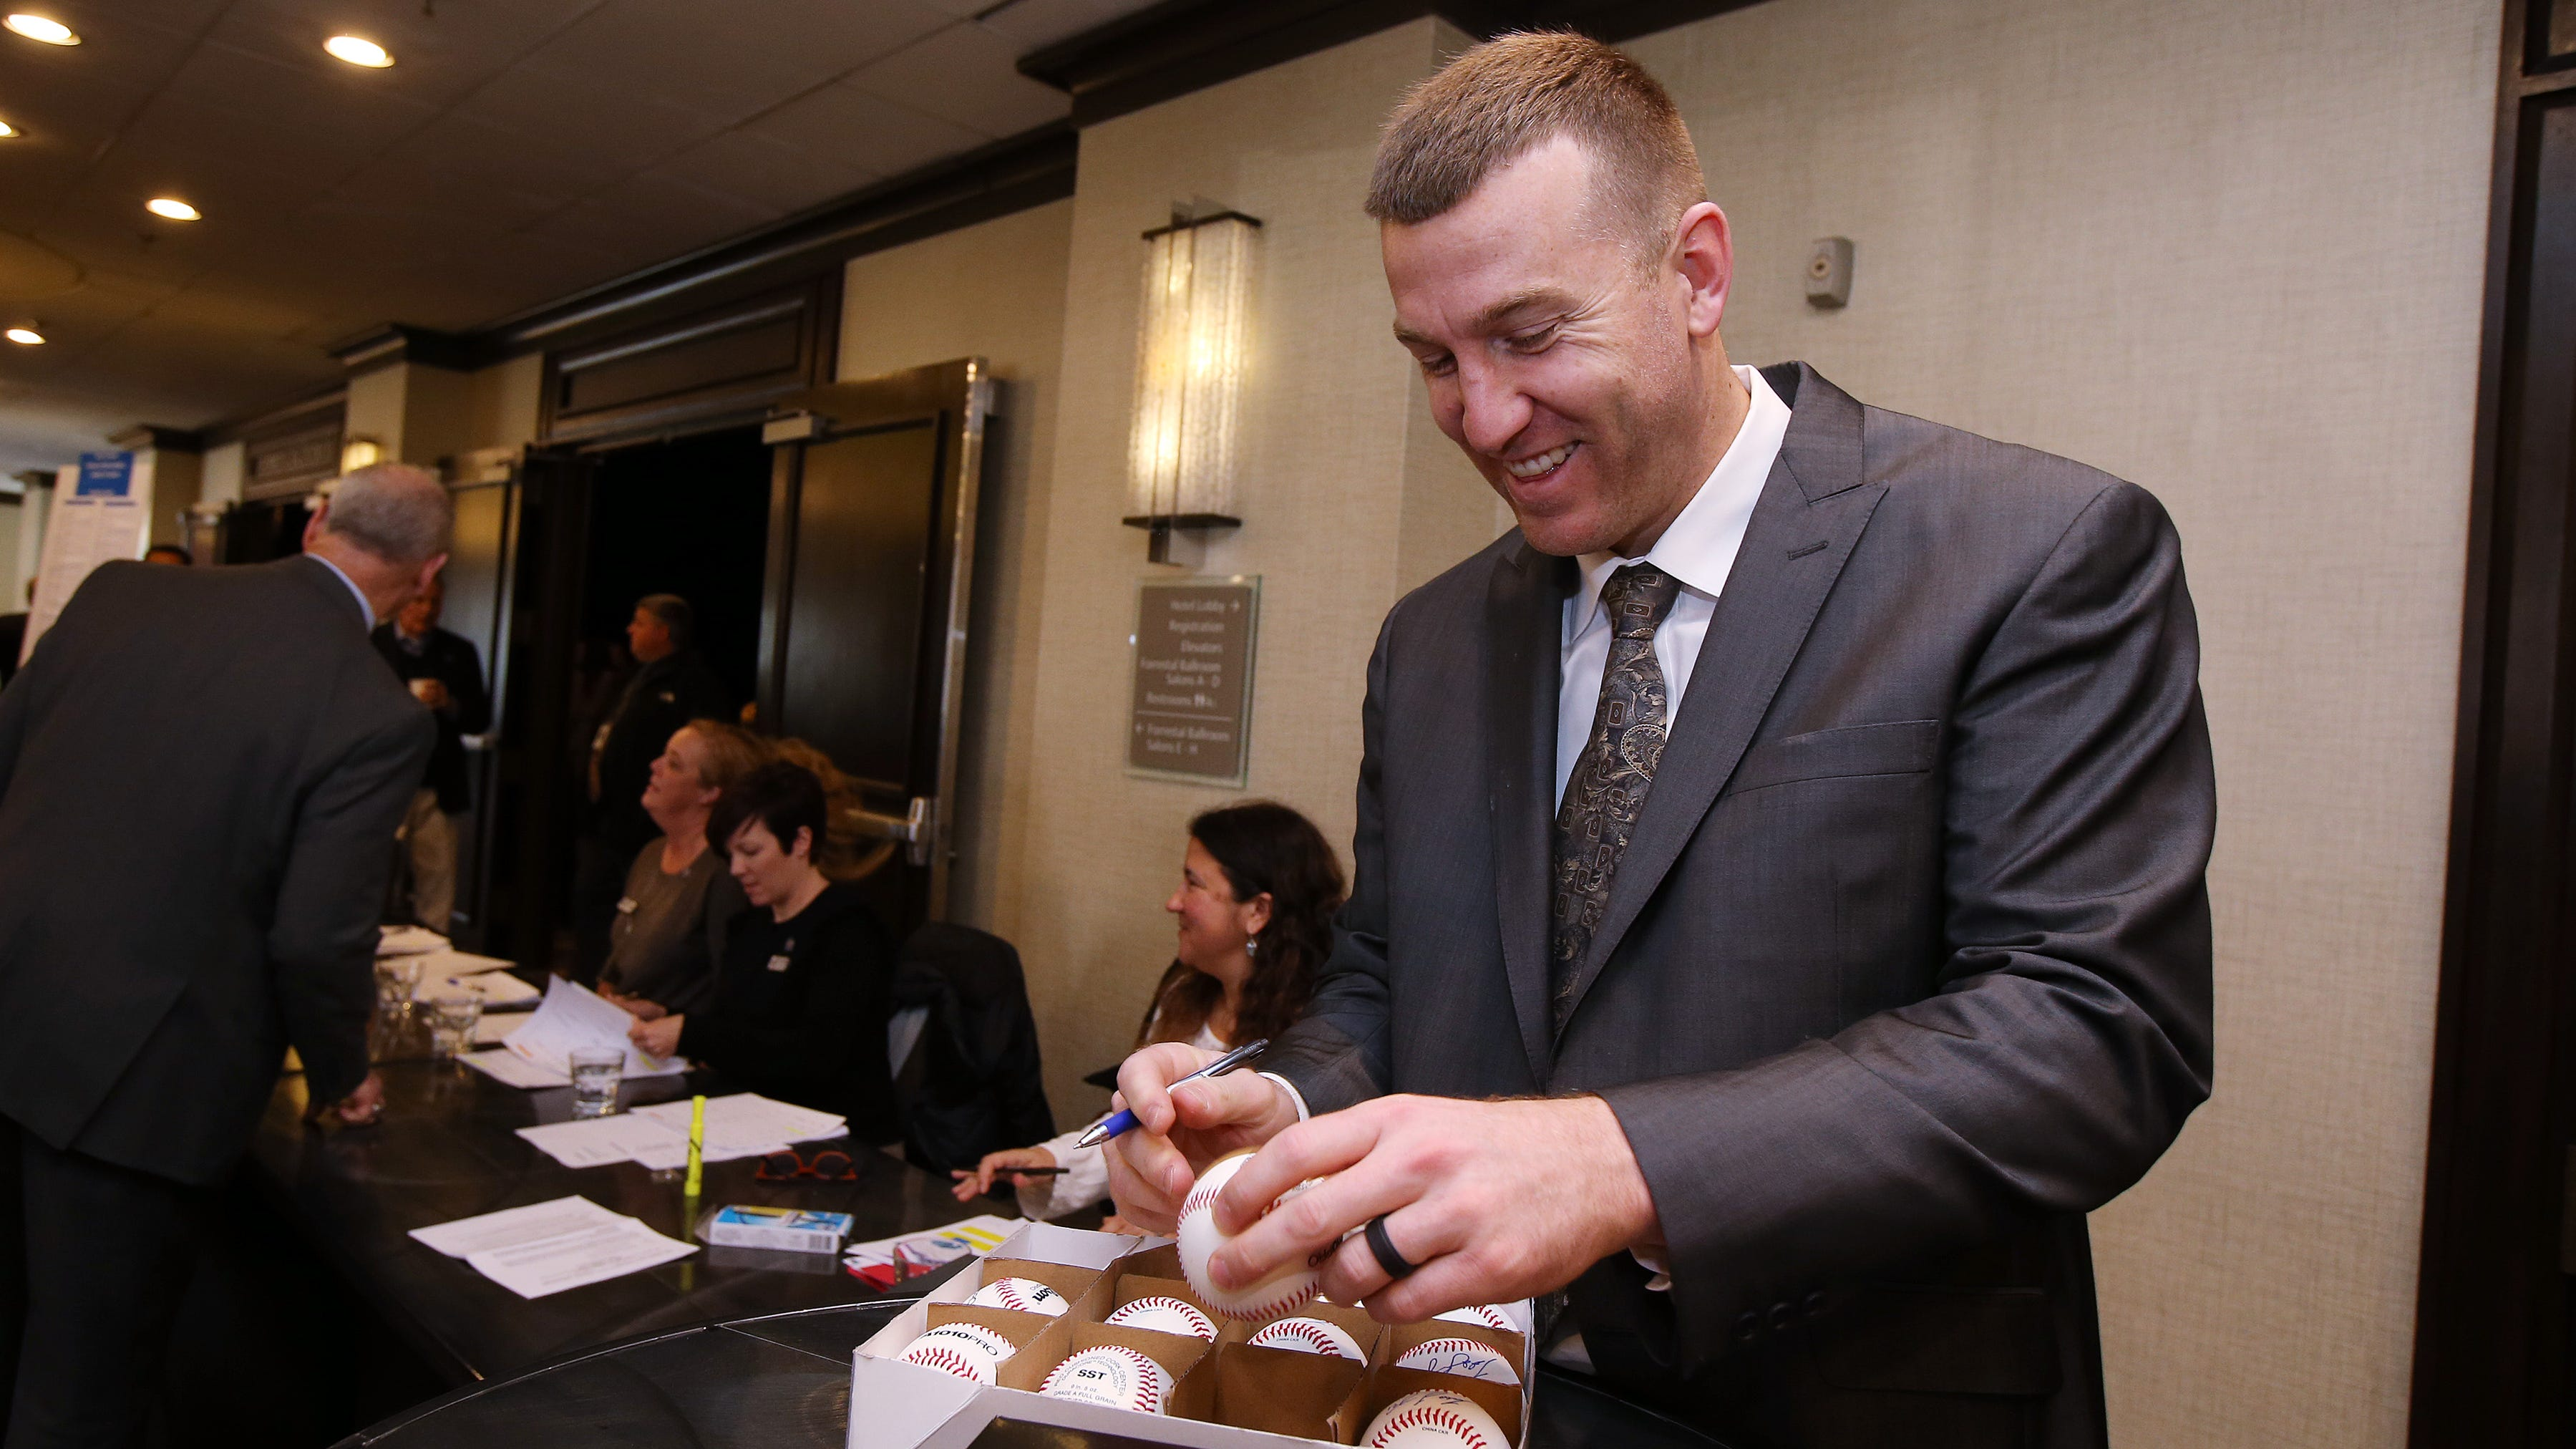 Todd Frazier of the New York Mets, and a Toms...